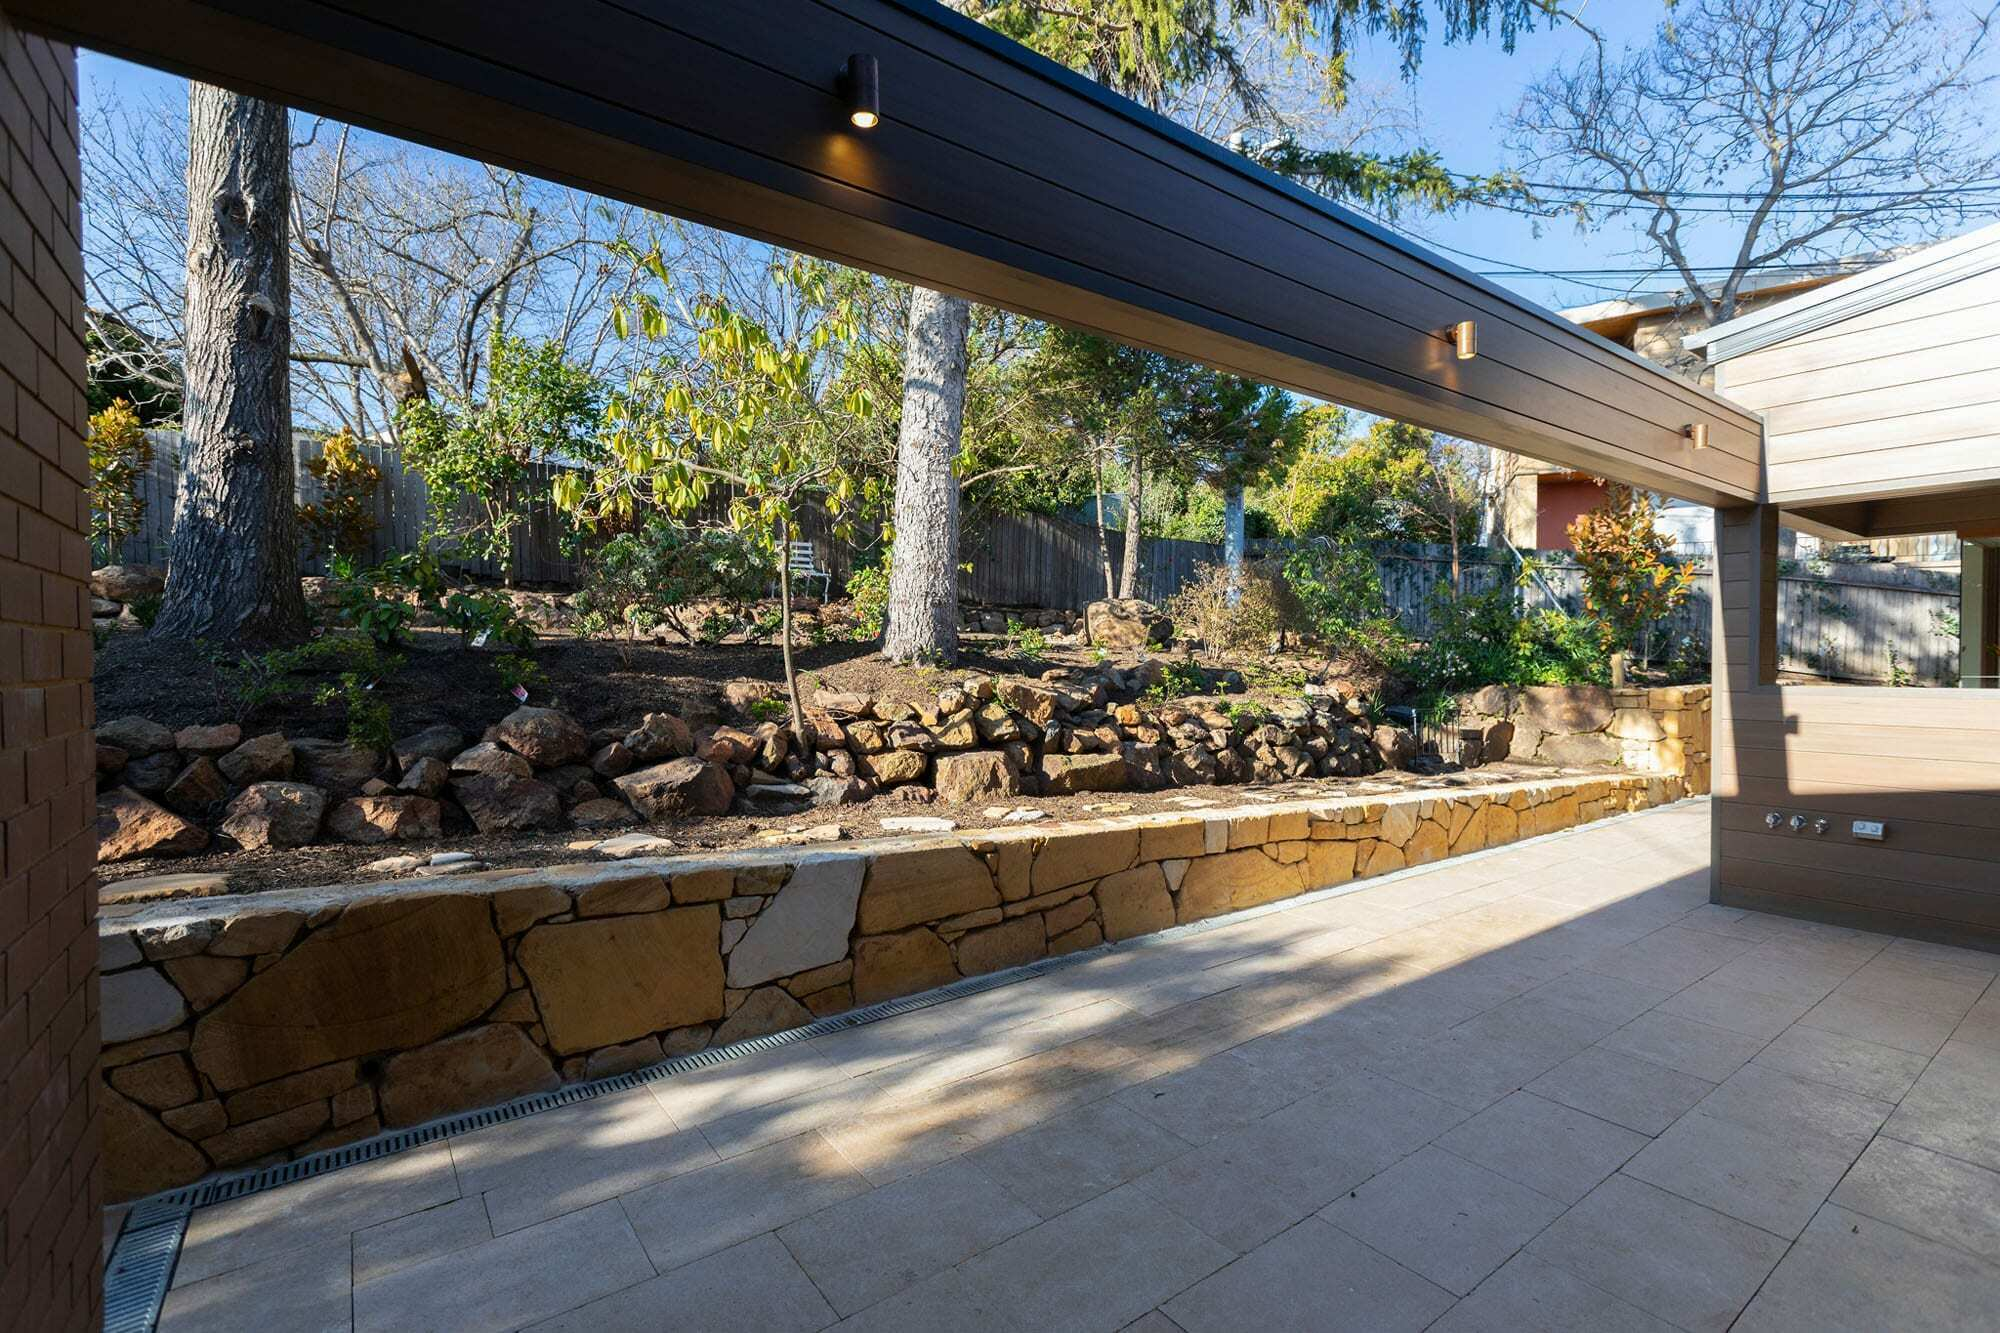 Homes by Howe Canberra builder – Governor Generals' renovation extension – Landscaping with stonework